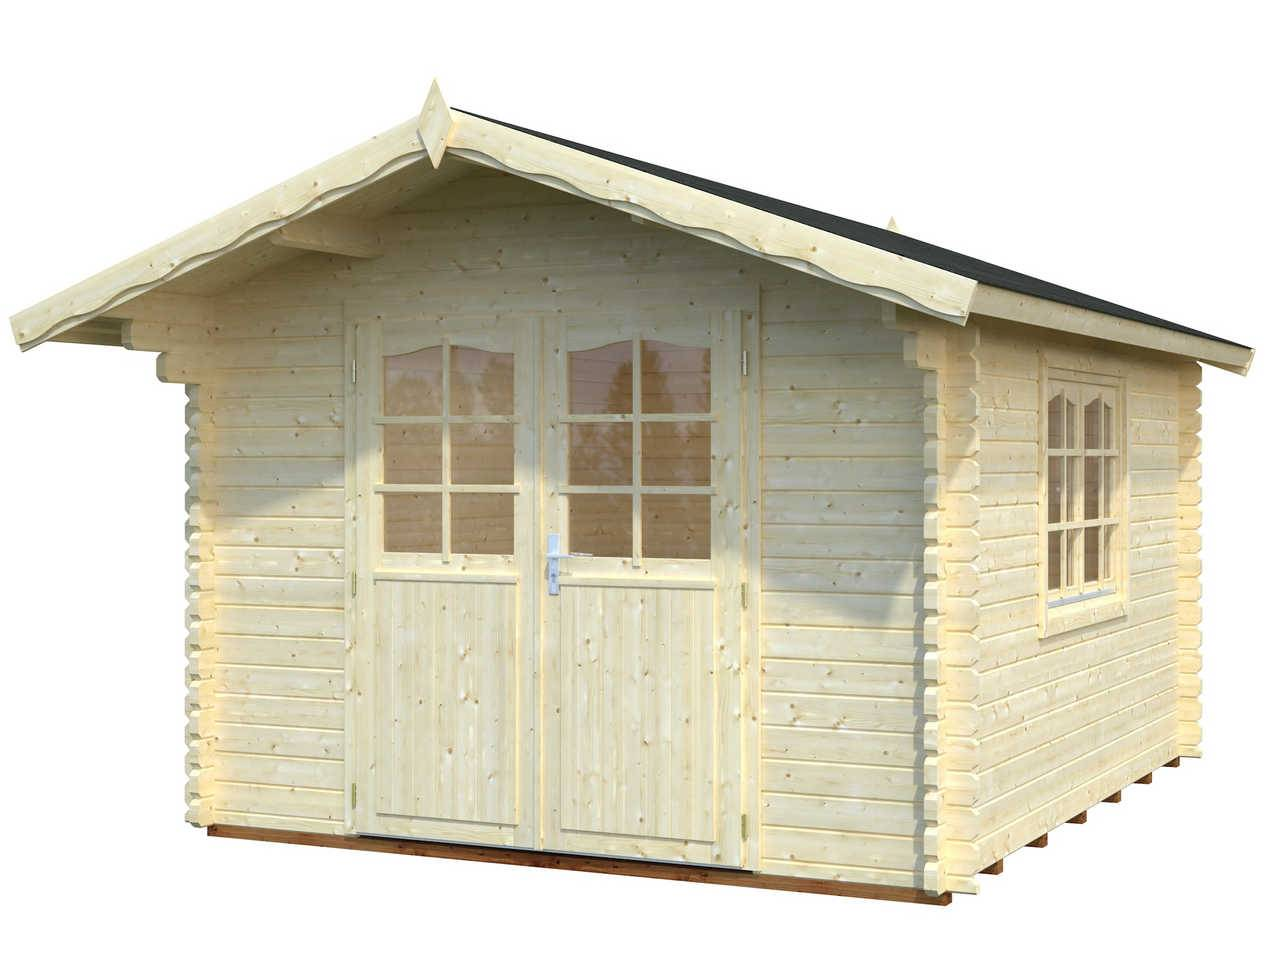 44 mm gartenhaus sally 10 2 m 320 x 380 palmako ger tehaus blockhaus holz ebay. Black Bedroom Furniture Sets. Home Design Ideas